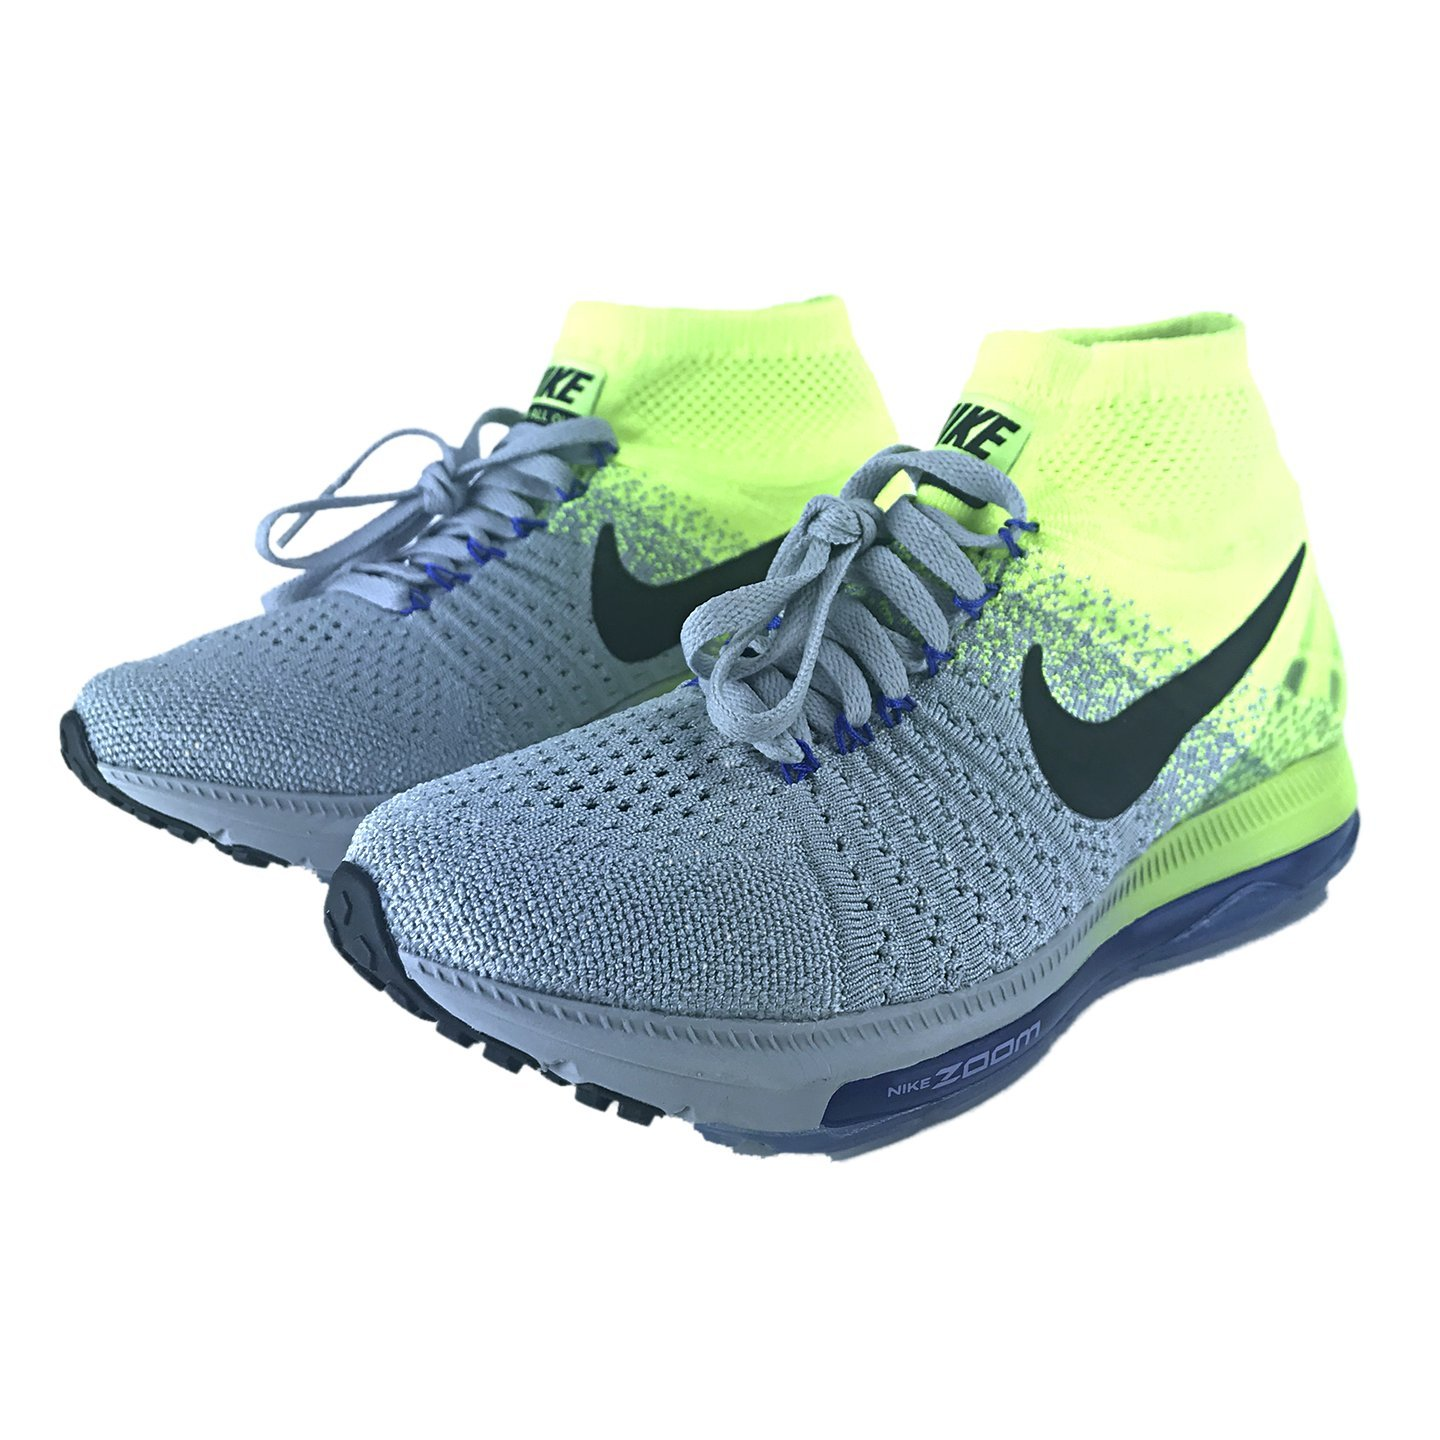 Nike Women's Zoom All Out Flyknit Running Shoes B072117DMF 10 B(M) US|Wolf Grey/Black Volt